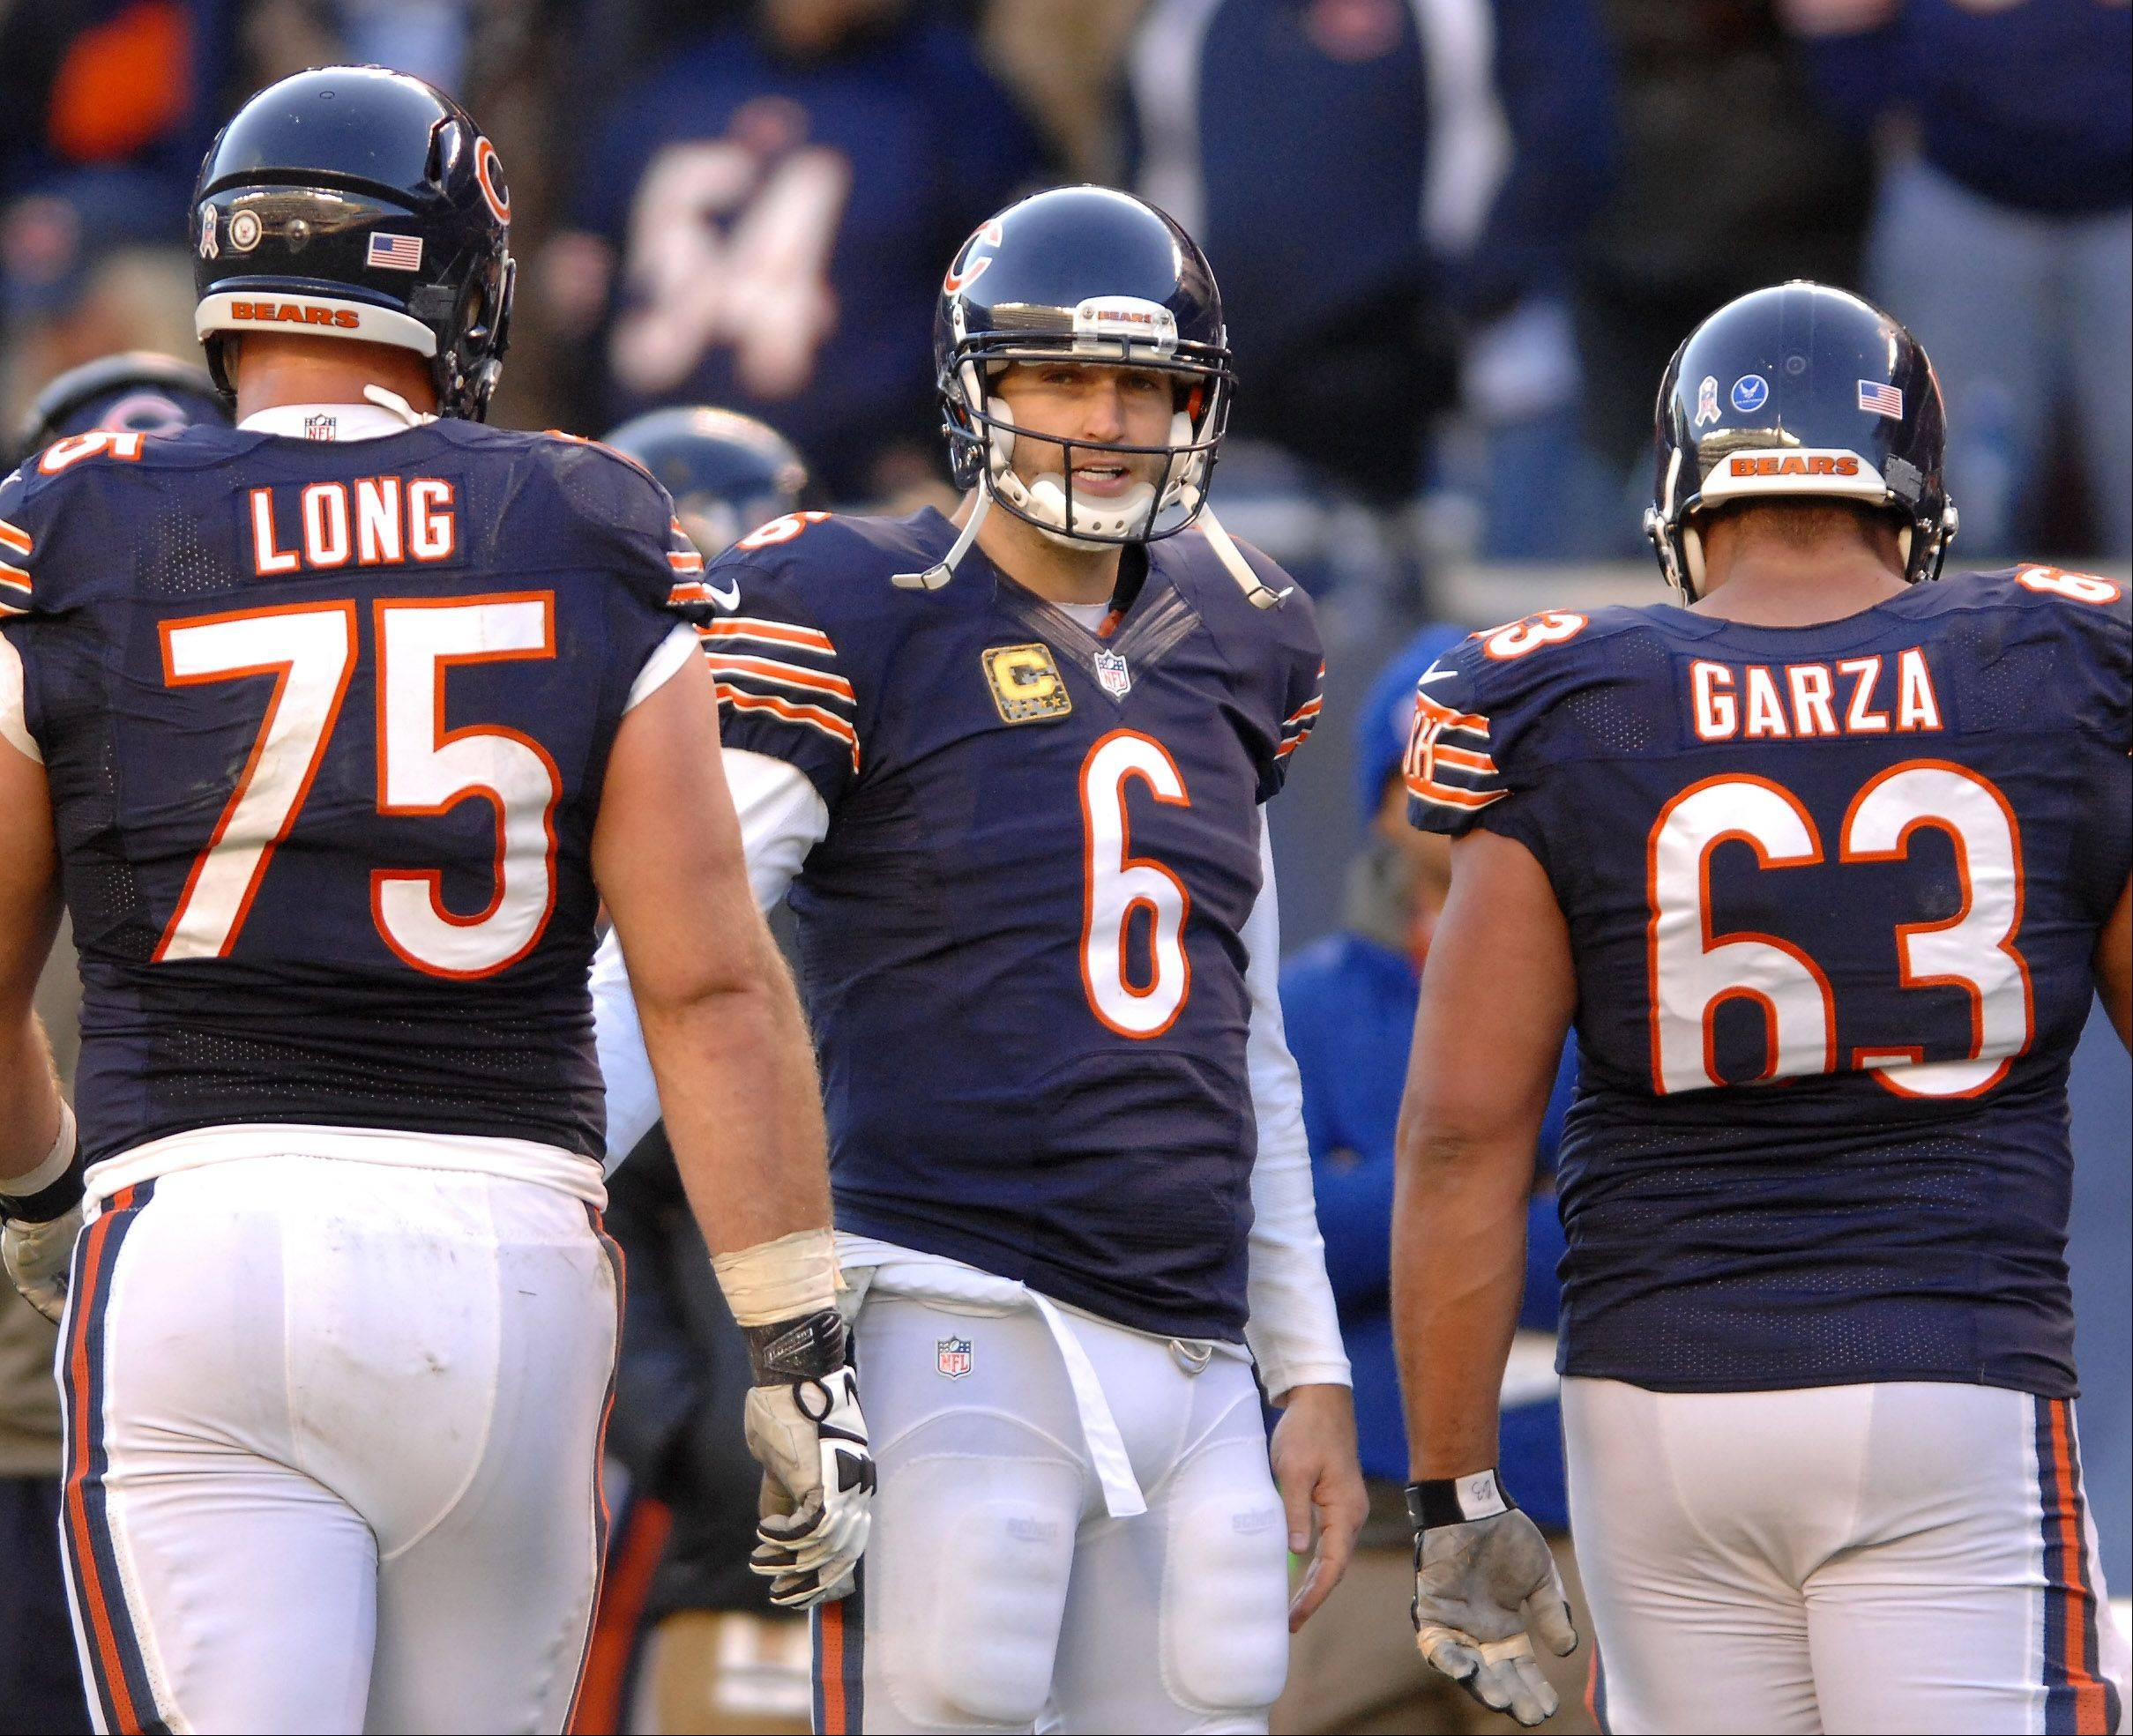 Injured Chicago Bears quarterback Jay Cutler (6) stands on the sidelines and watches his teammates come off the field after a failed two-point conversion dashed the Bears hopes for a comeback against Detroit during Sunday's game in Chicago.